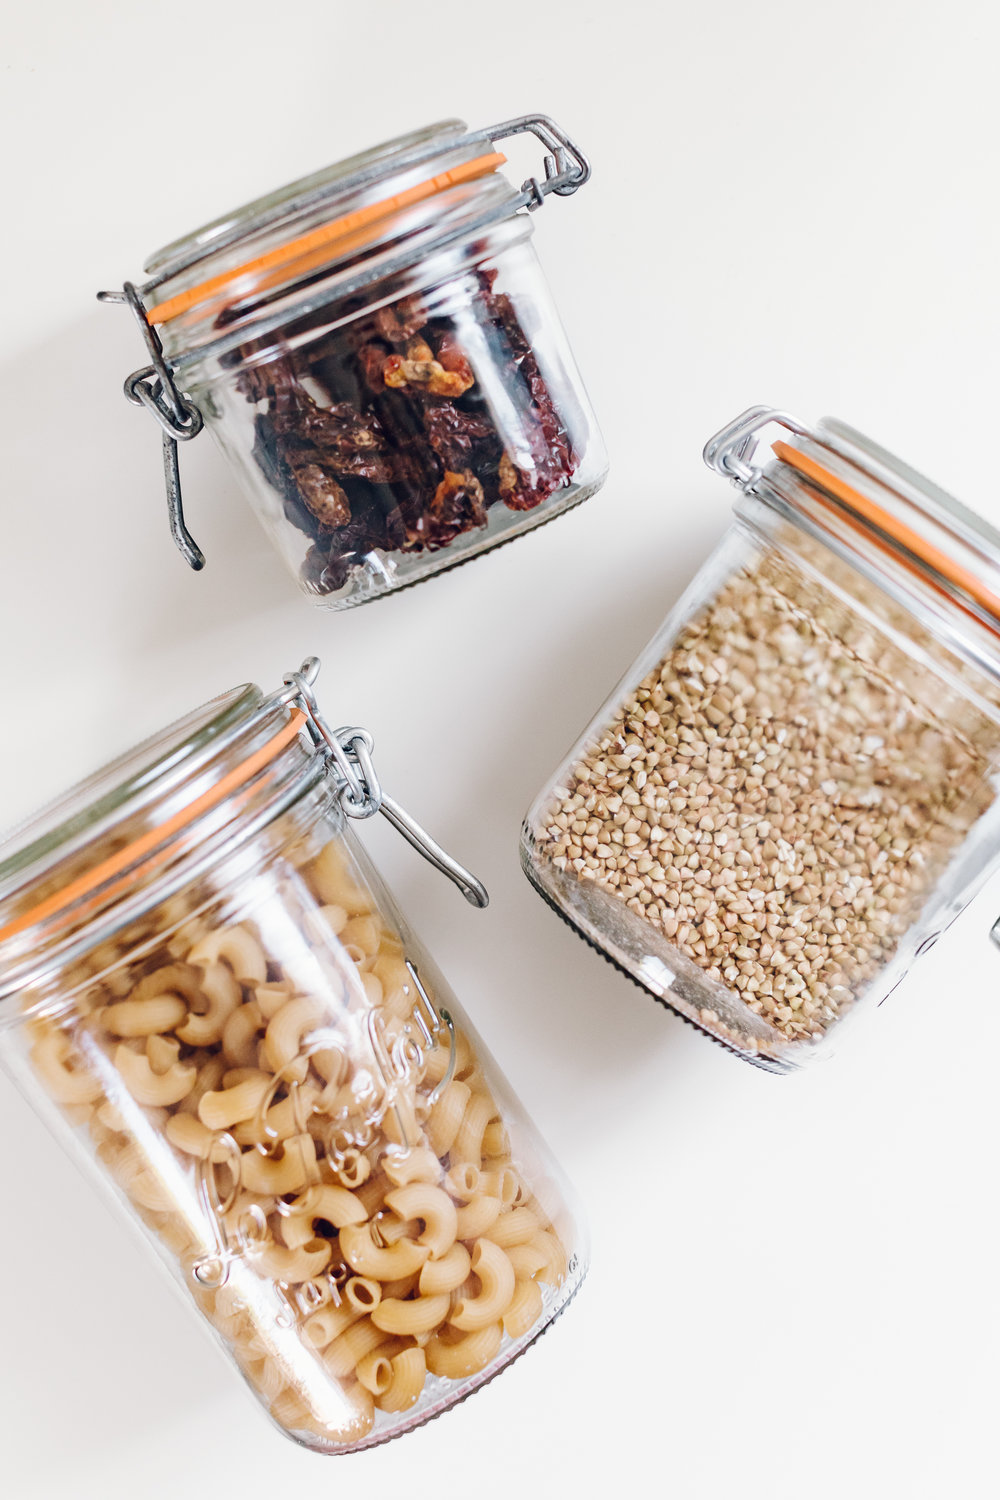 Le Parfait Jars - These jars are heavy duty, high quality, and my favorite for storing goods that I like to scoop thanks to their wide mouth opening.I get mine on Amazon, and use a variety of sizes and shapes - you really can't go wrong with any of these!